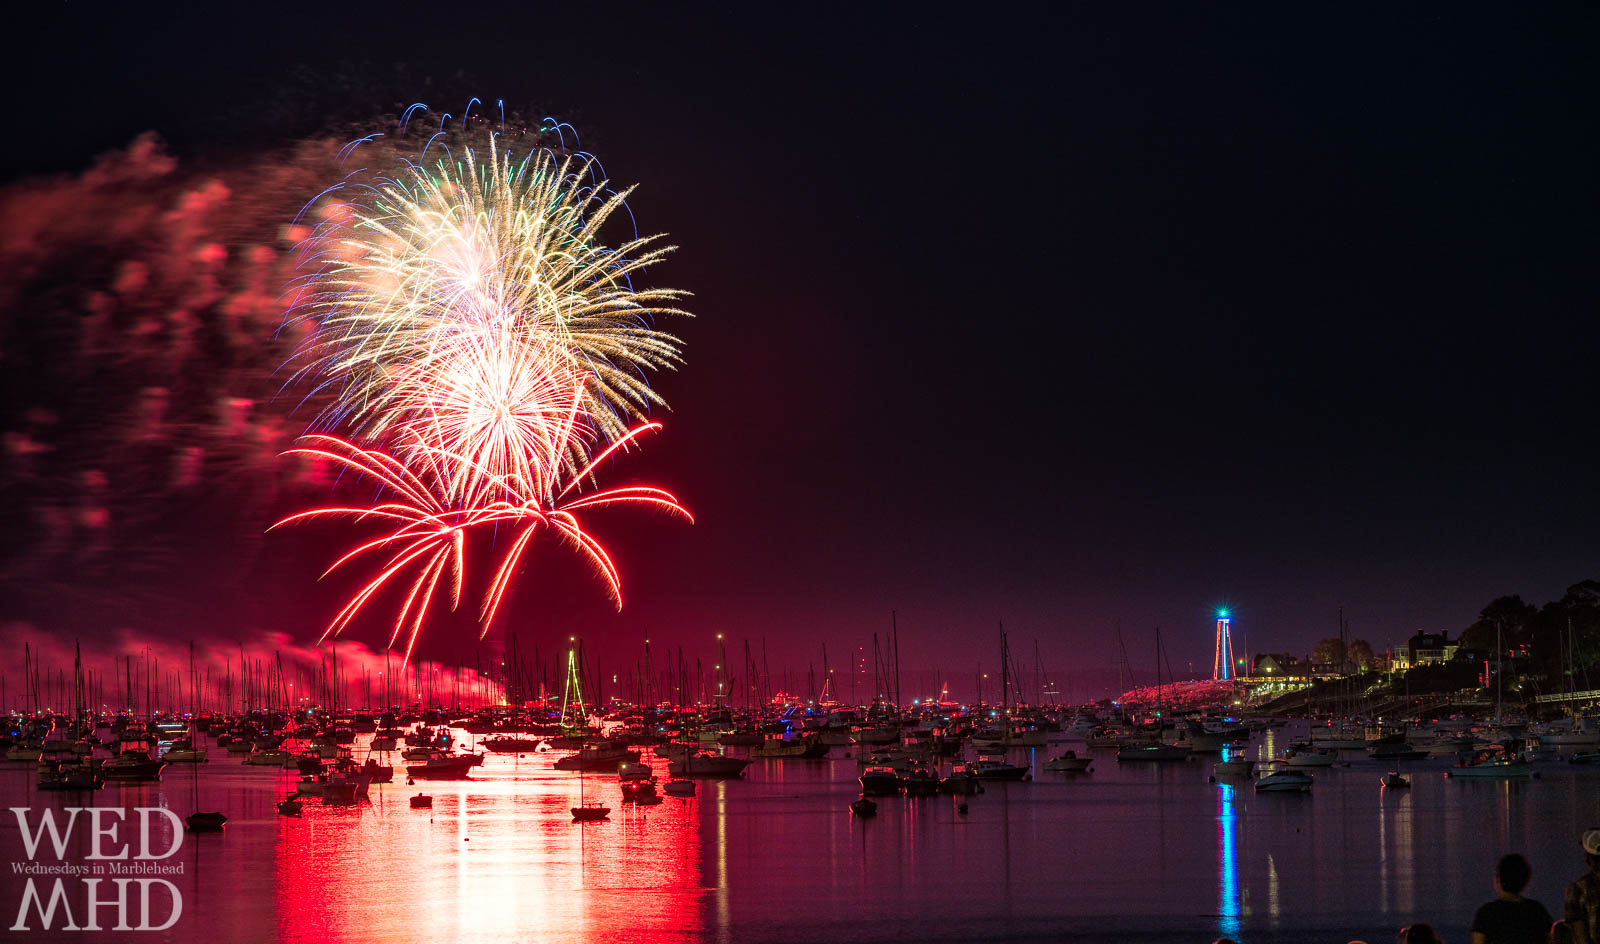 The annual Marblehead fireworks can be viewed from numerous spots around the harbor. This year I decided to capture it from atop the causeway.